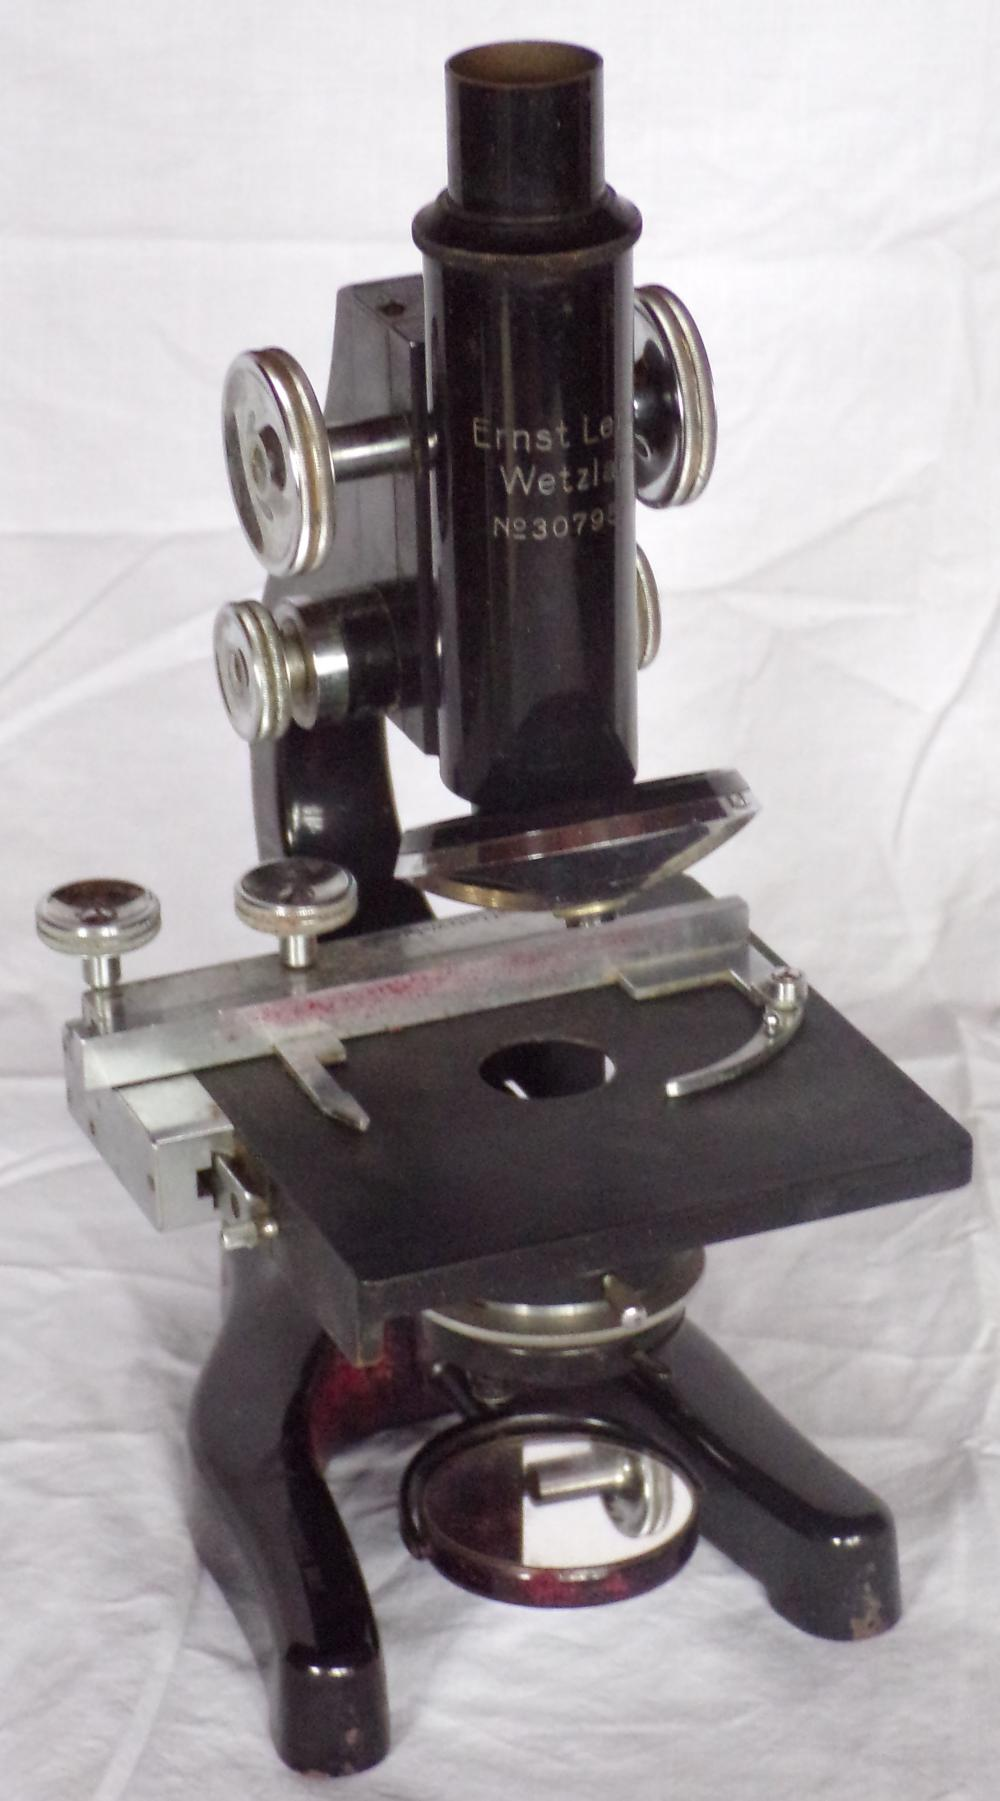 "Vintage scientific microscope by Ernst Leitz Wentzler with 5 lenses & accessories, additional base mirror & black case, SN#37957, microscope 11 ¾"" T & marked at base, Thomas E Daly; case - 8 ¾"" T x 13 ½"" W x 7 1/8"" D, some paint loss & rust on feet of microscope, case shows soiling & separation of outside covering in some spots"